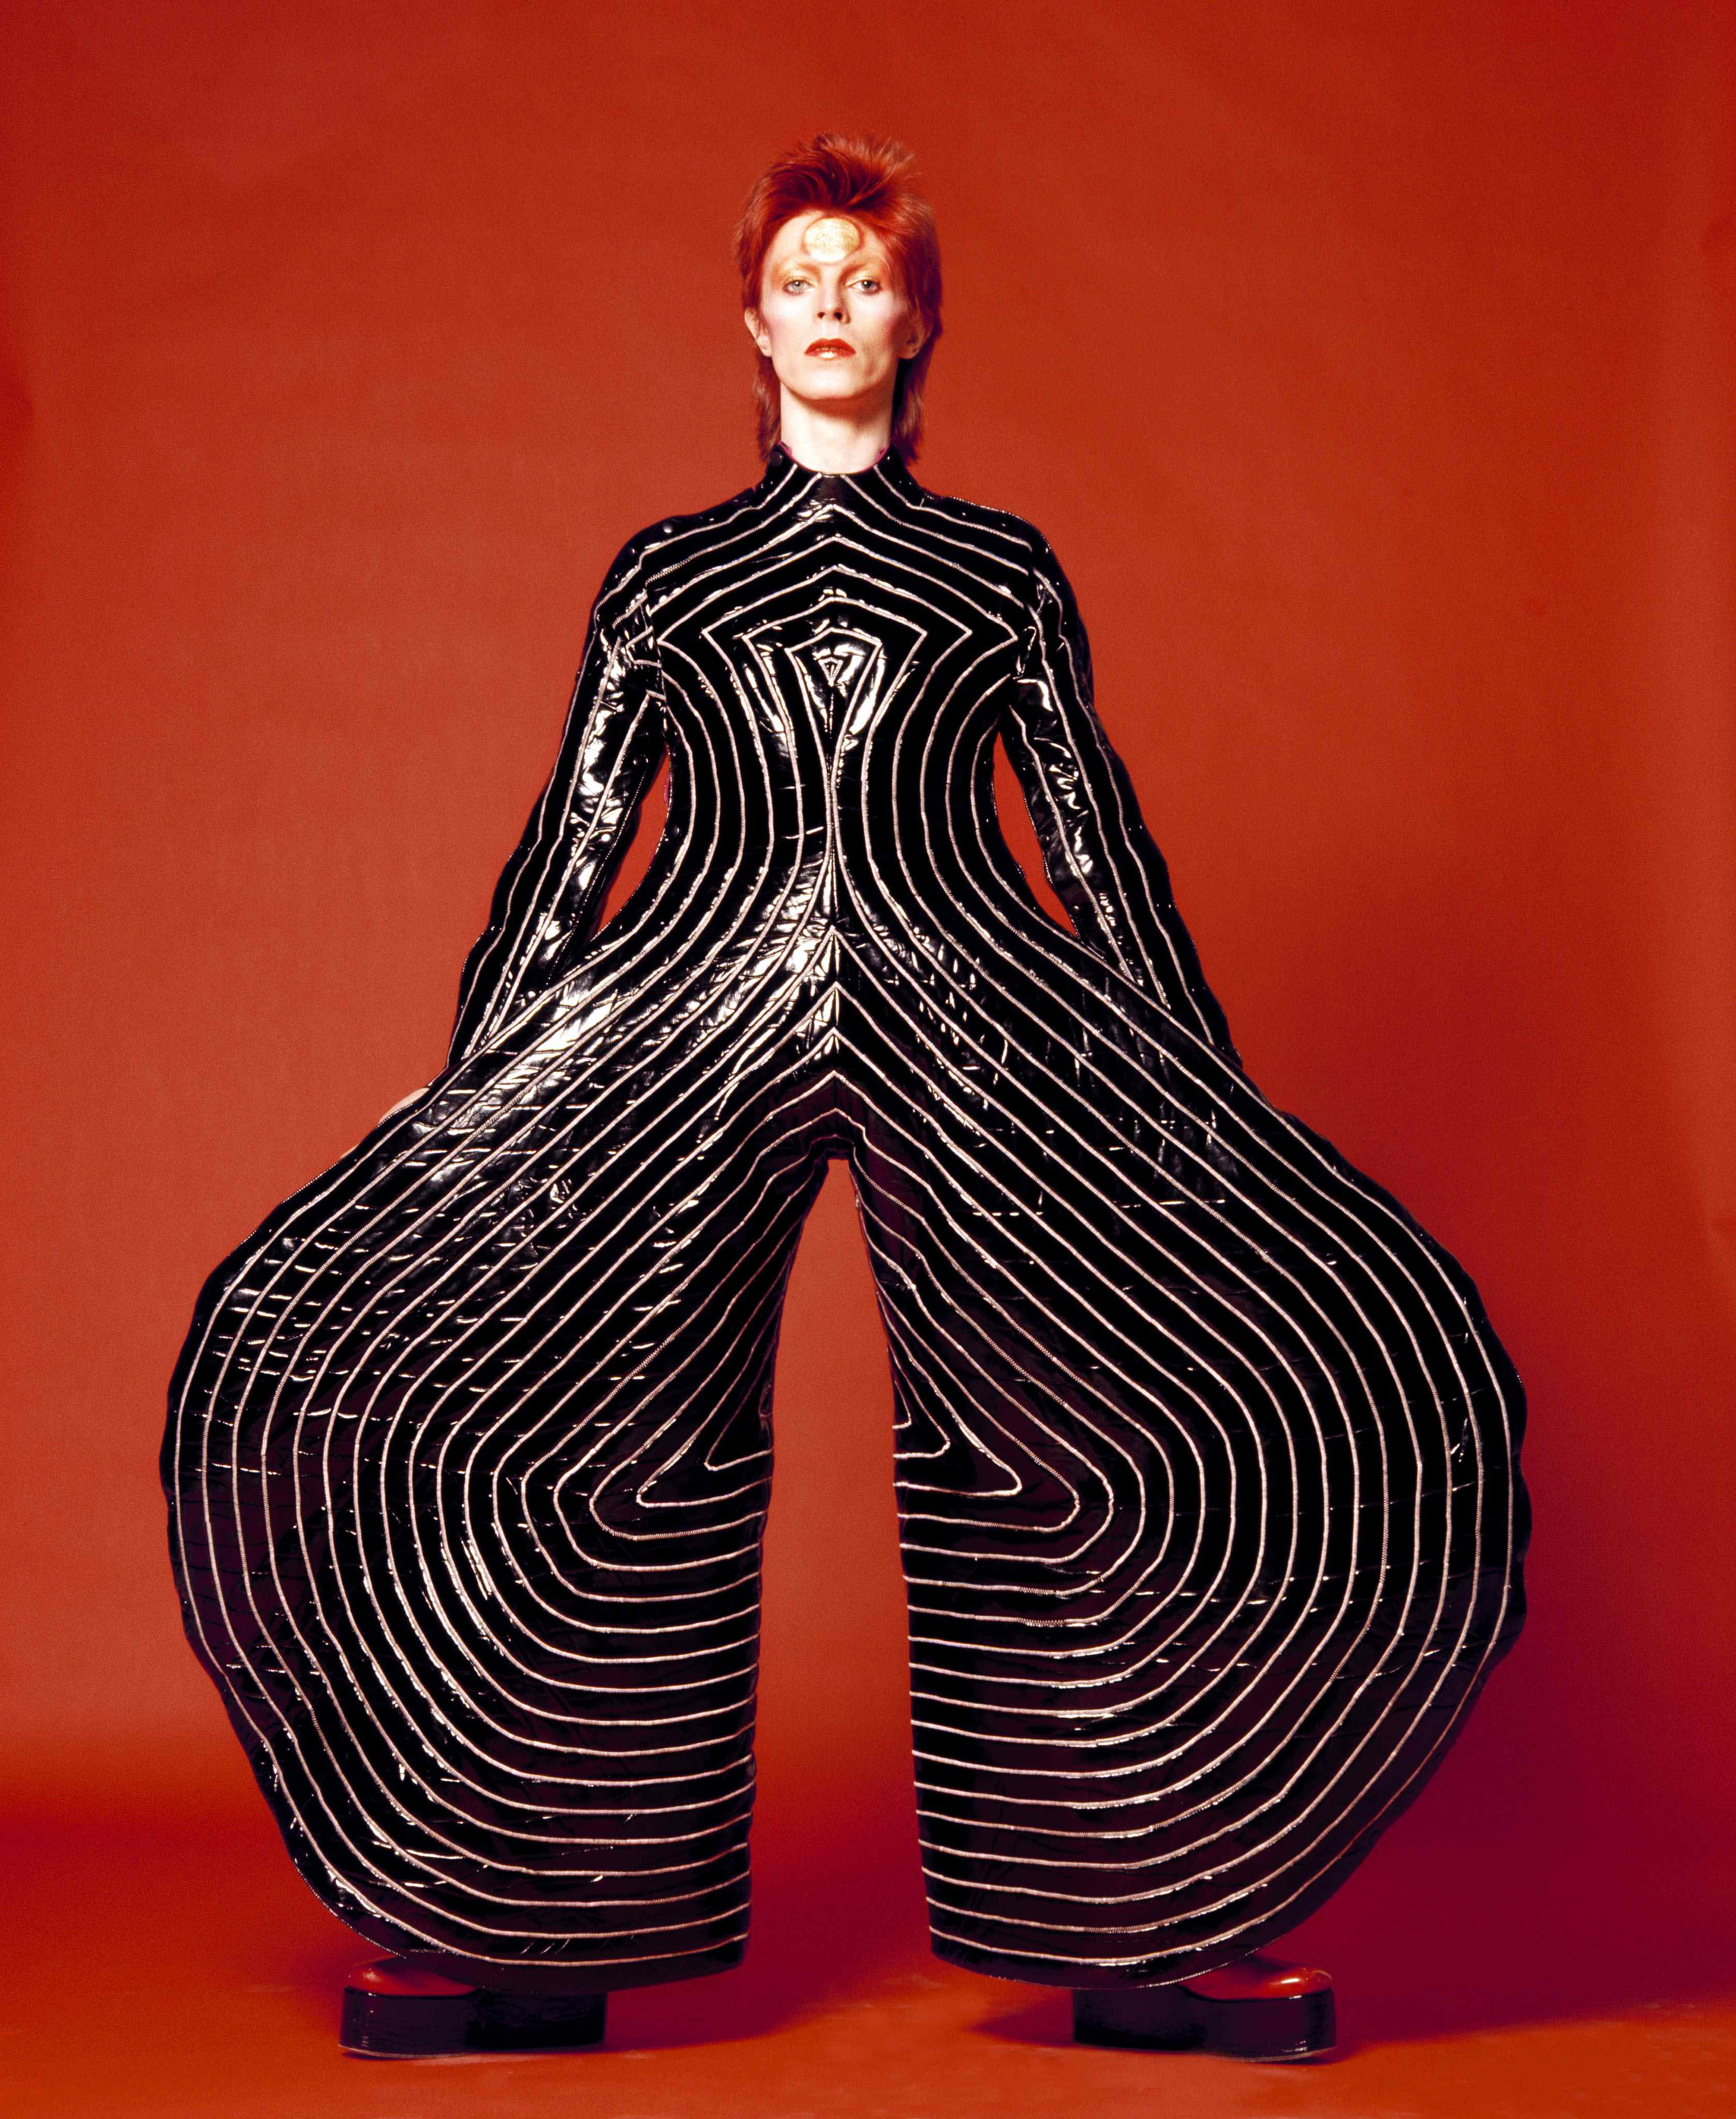 Striped_bodysuit_for_Aladdin_Sane_tour_1973_Design_by_Kansai_Yamamoto_Photograph_by_Masayoshi_Sukita__Sukita_The_David_Bowie_Arc